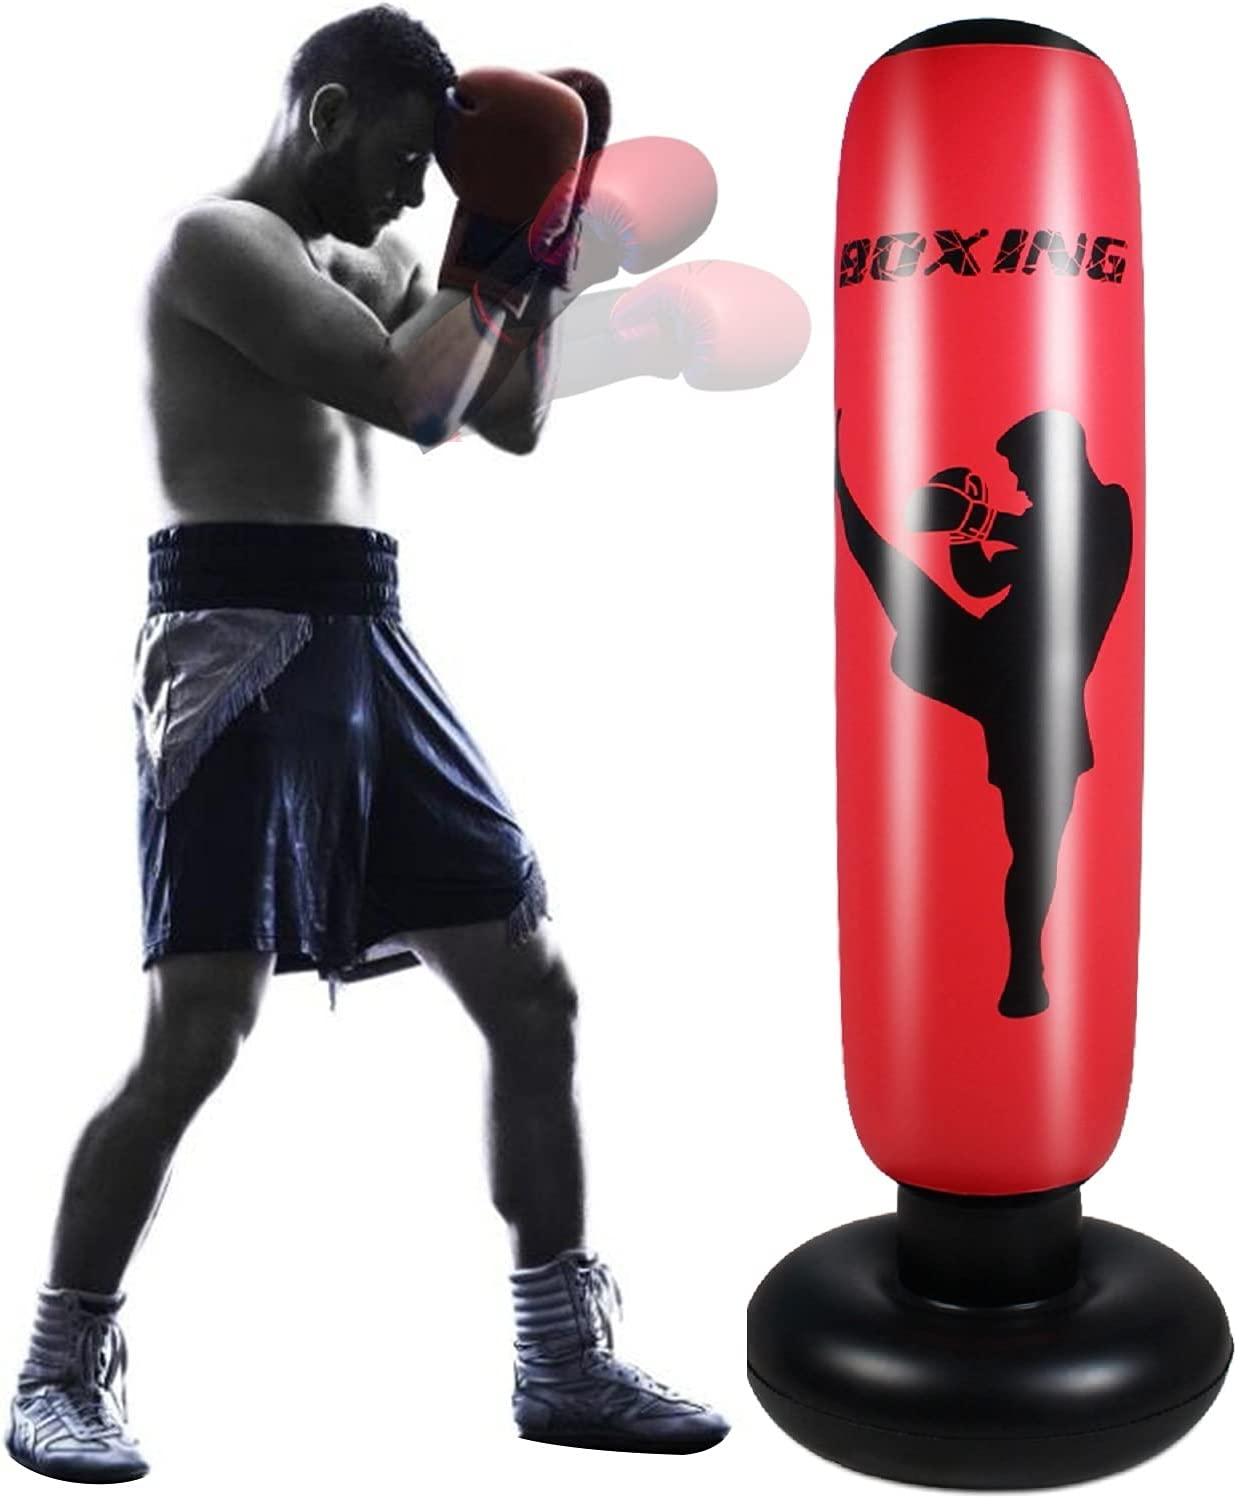 Max 86% OFF FFOO Boxing Bag Punching Bags Inflatable for 1.7m New color Adu